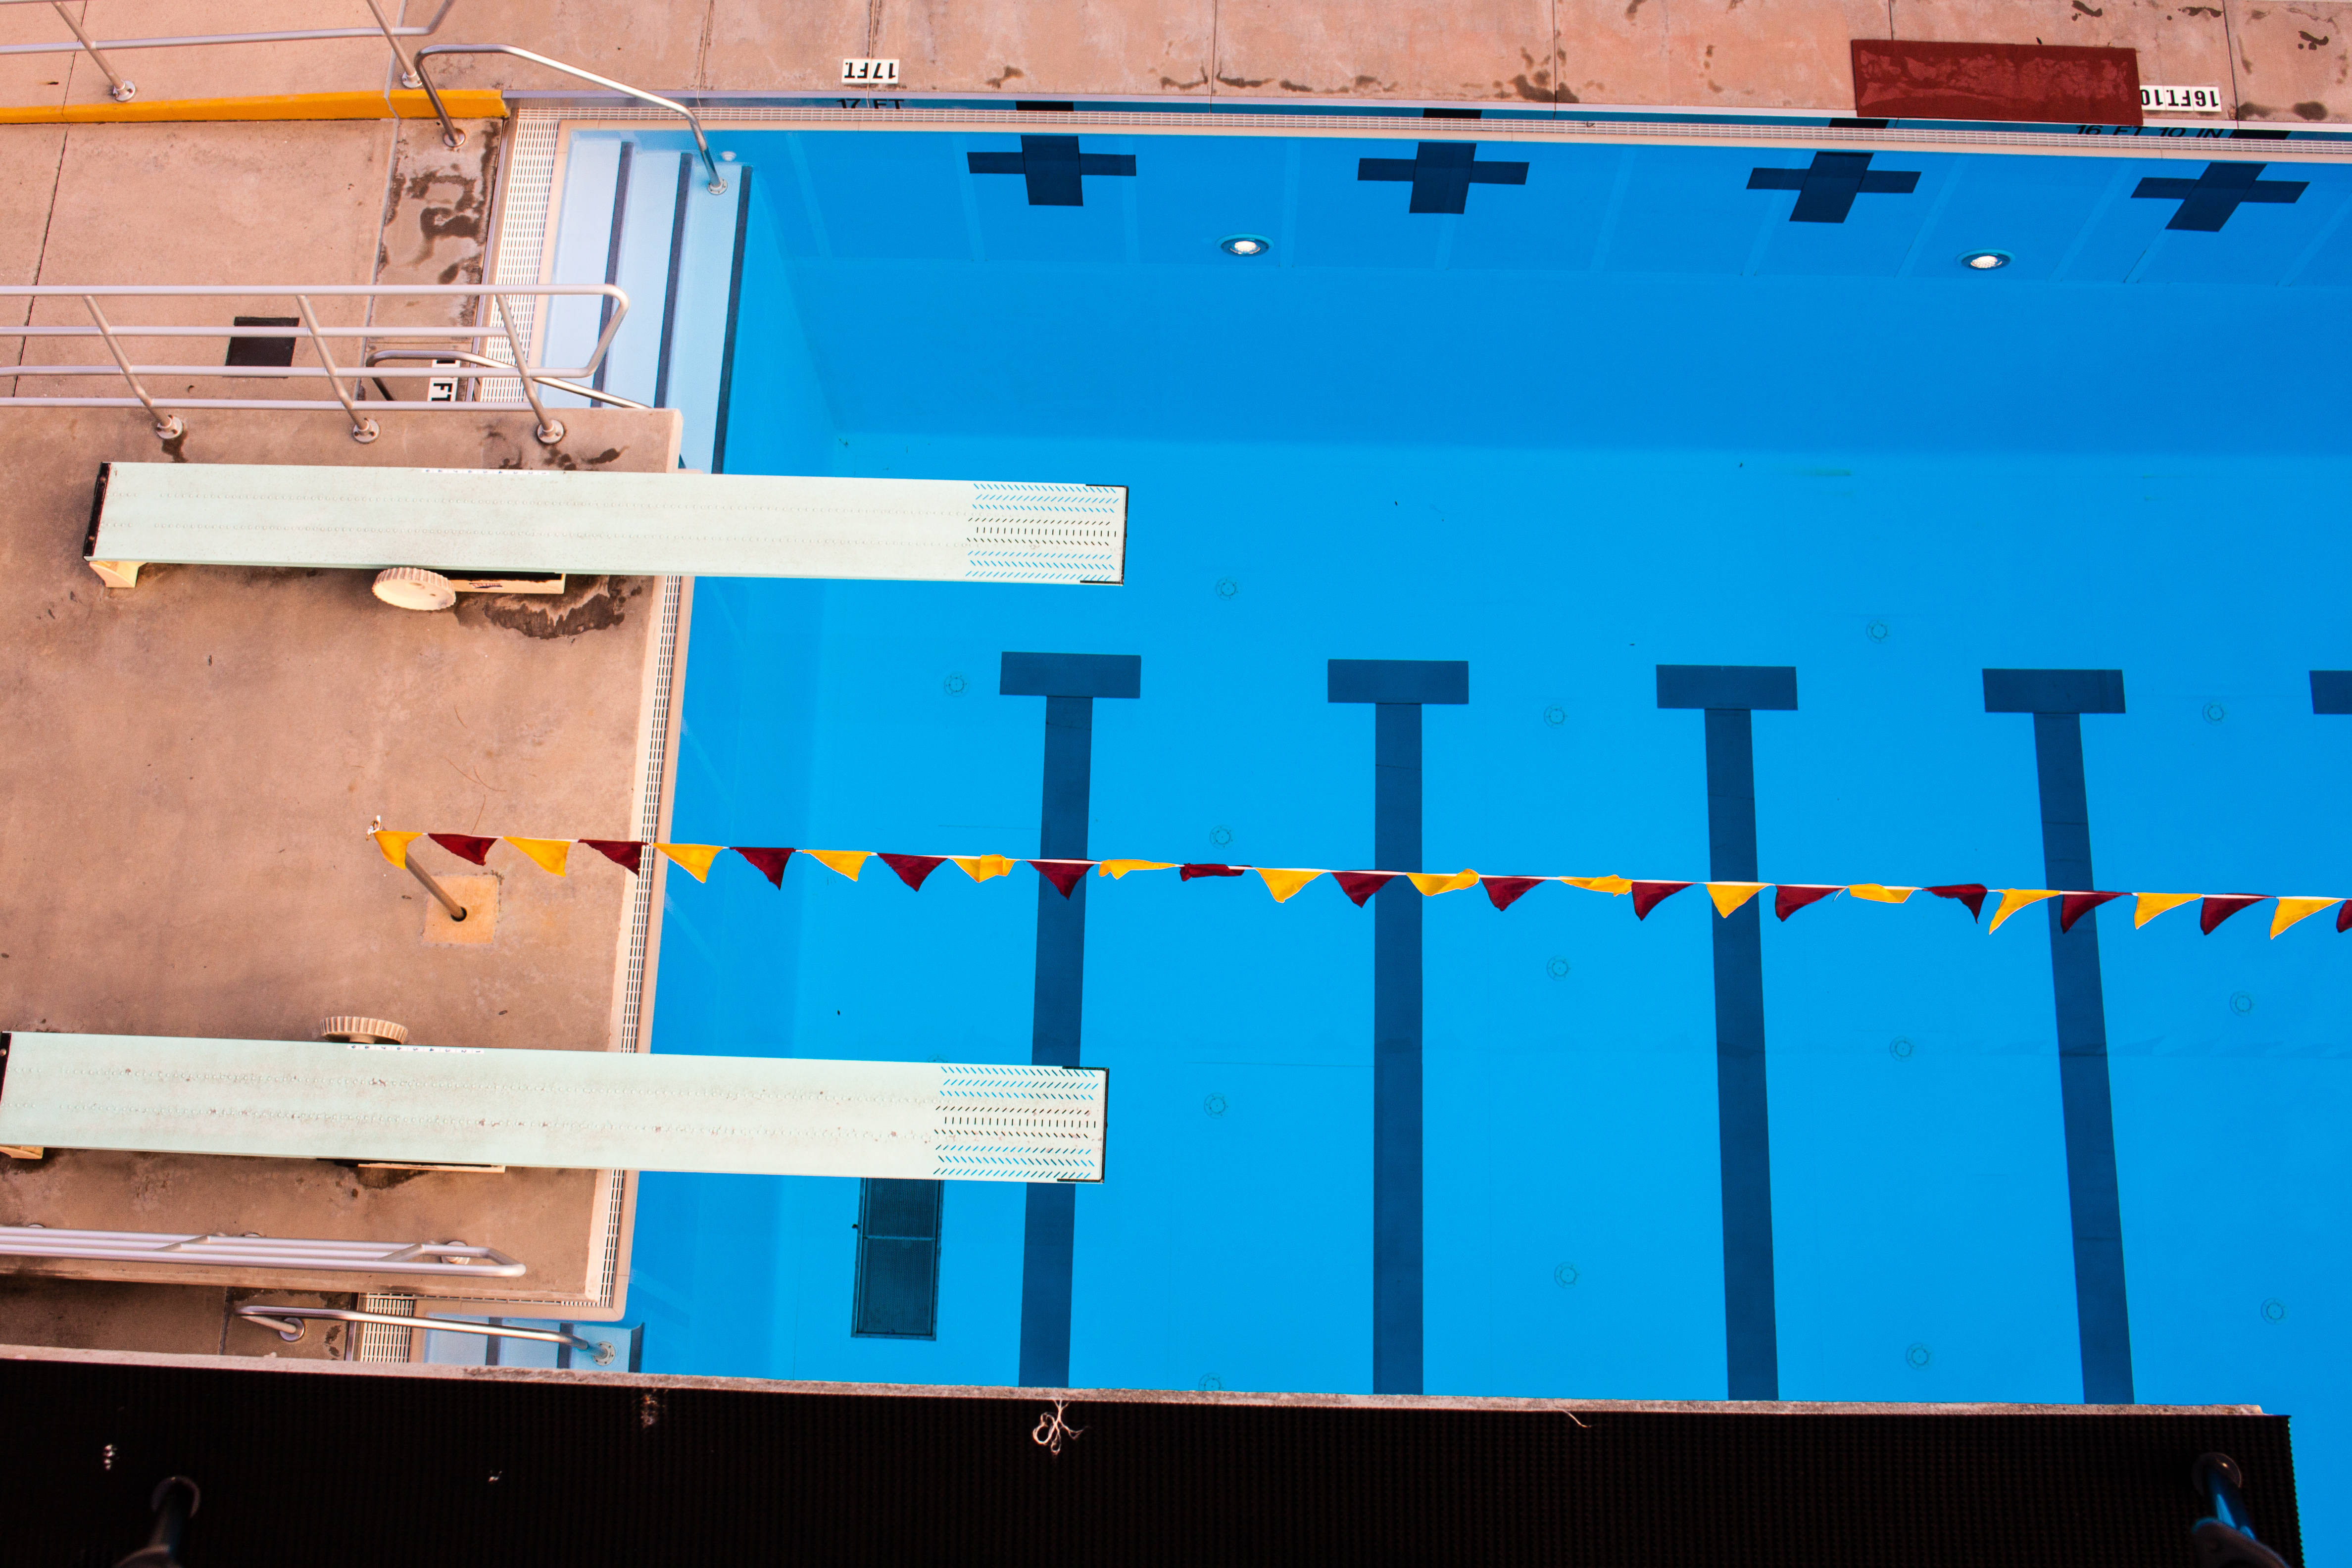 A view of the 1-meter diving boards